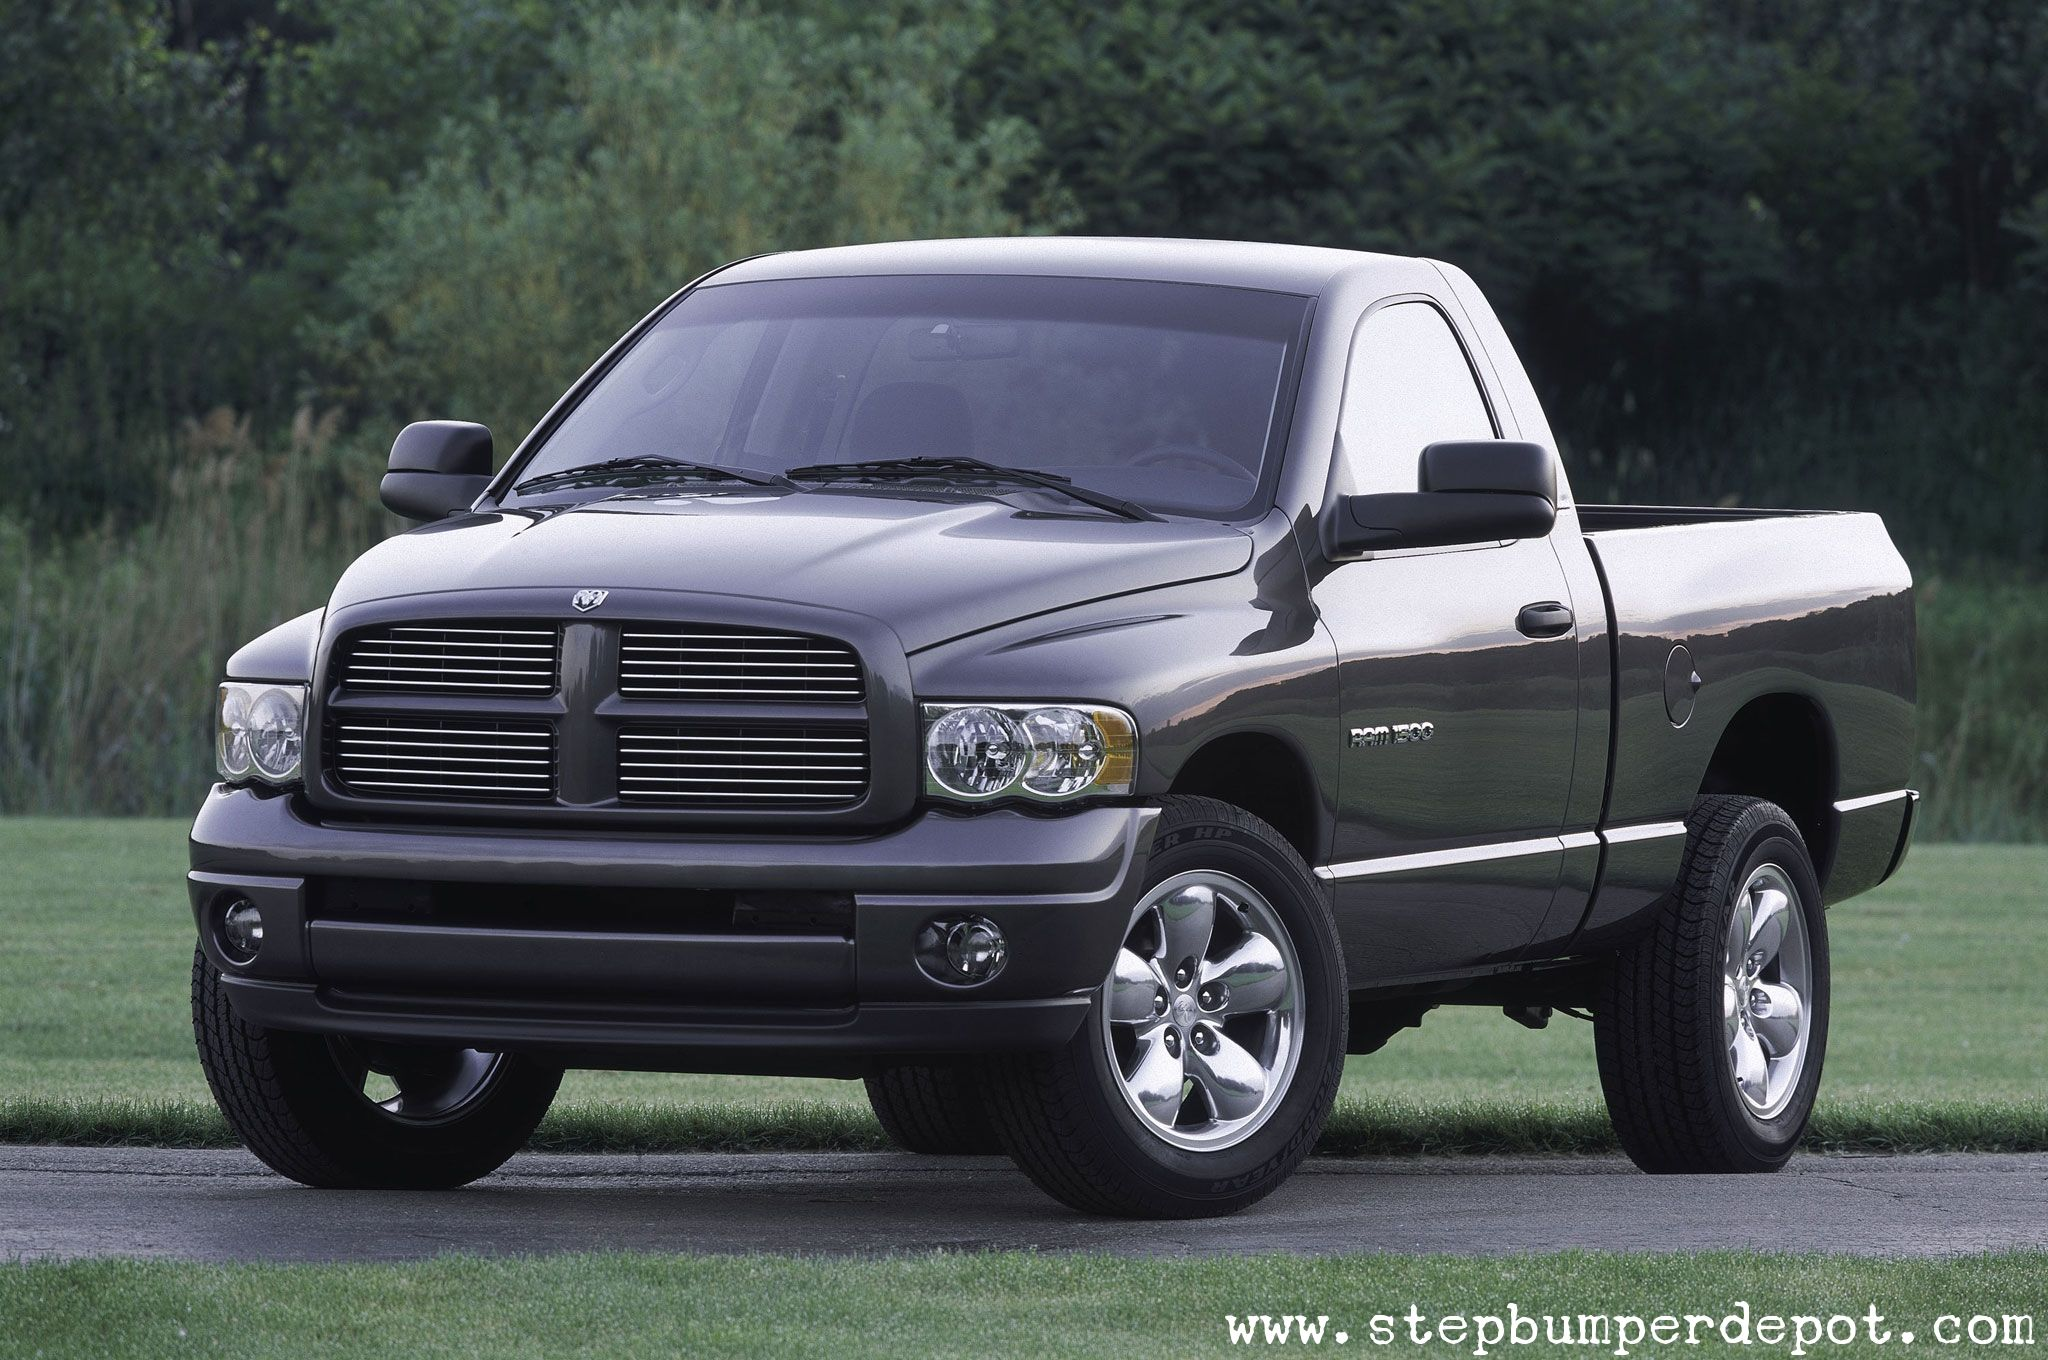 Looking For Dodge Ram Bumper In Usa Buy Or Replace 2003 2012 Dodge Ram Front And Rear Bumper At Step Bumper Depot Ram Trucks Dodge Ram 1500 Dodge Trucks Ram